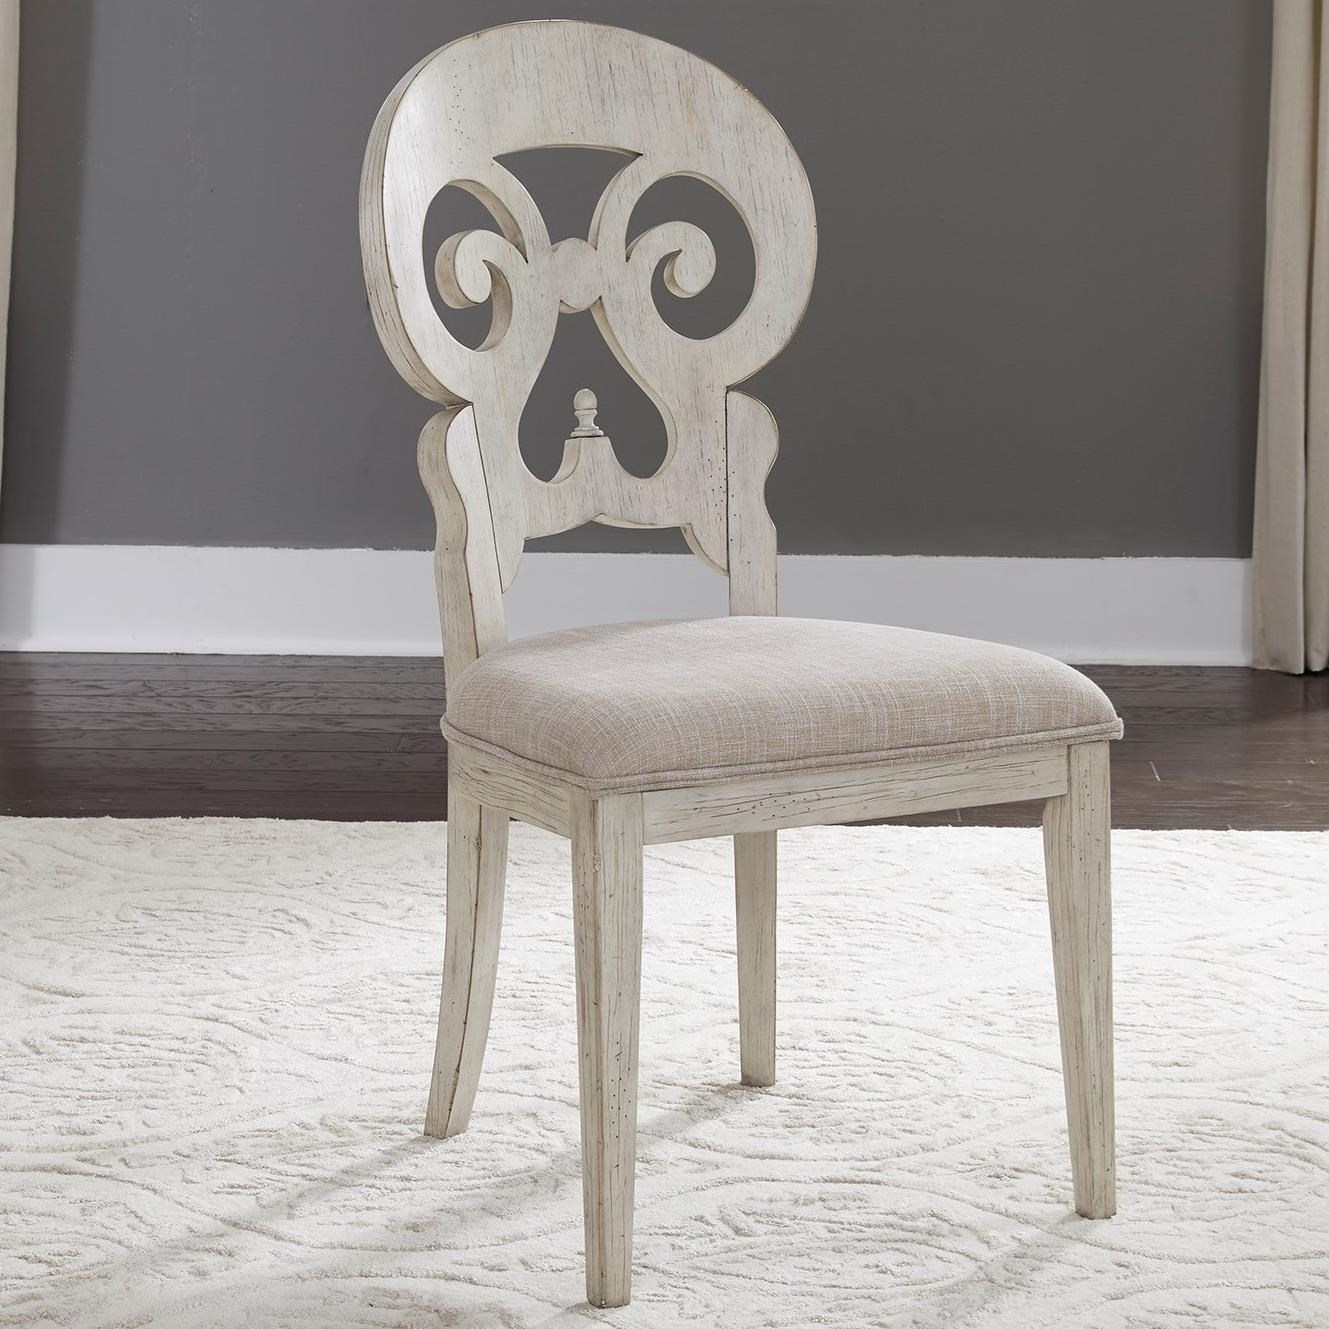 Merveilleux Liberty Furniture Farmhouse Reimagined Relaxed Vintage Upholstered Splat  Back Side Chair